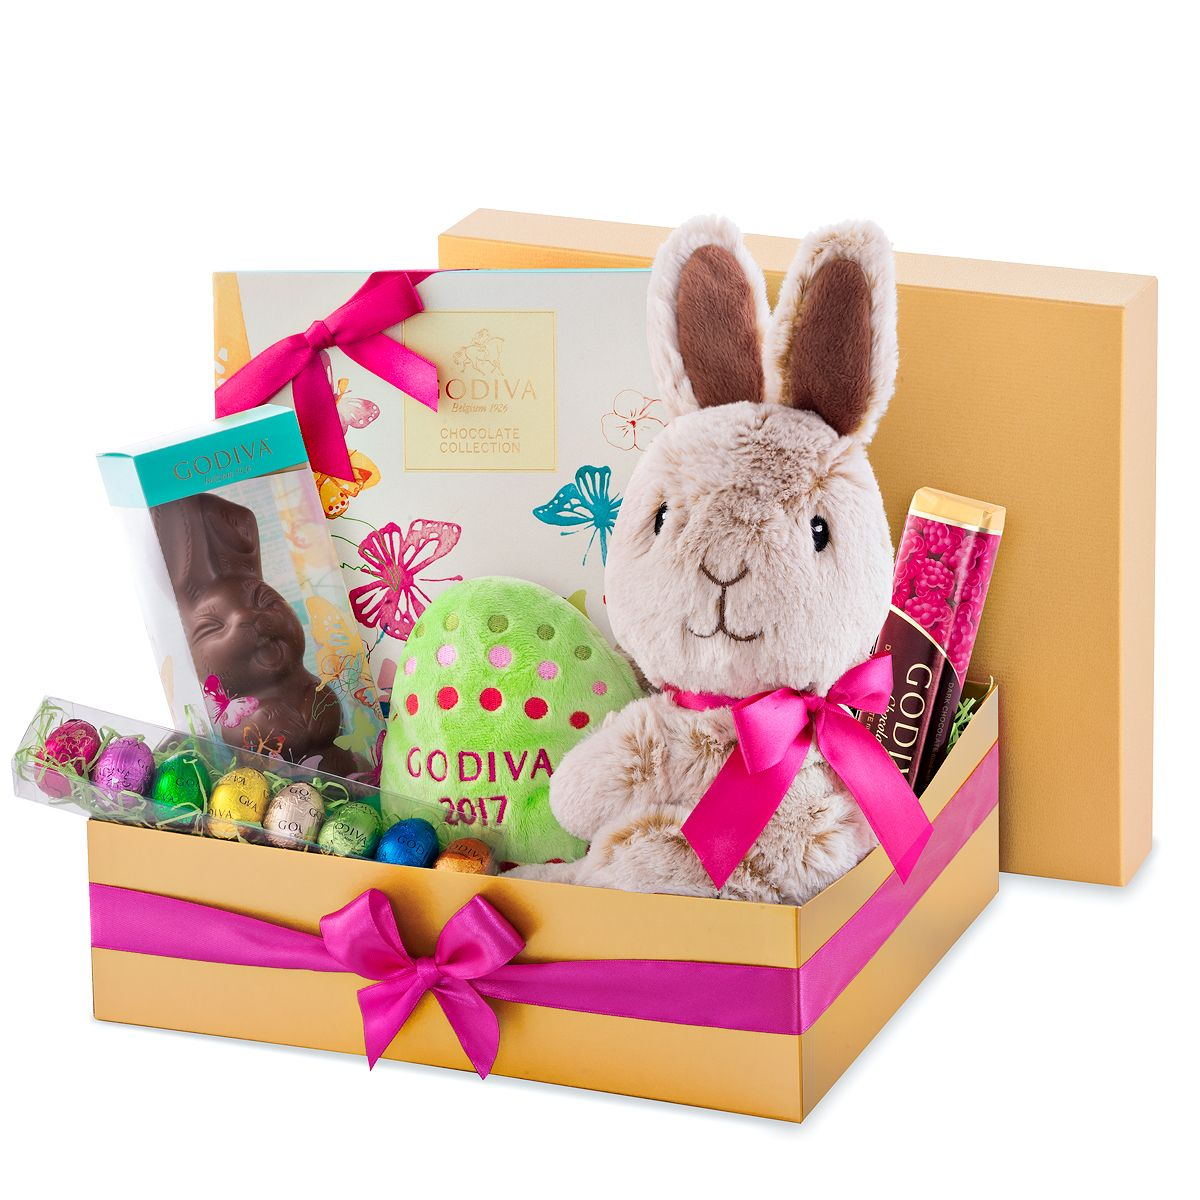 Hop into spring with this festive golden godiva gift box filled easter gift baskets negle Choice Image